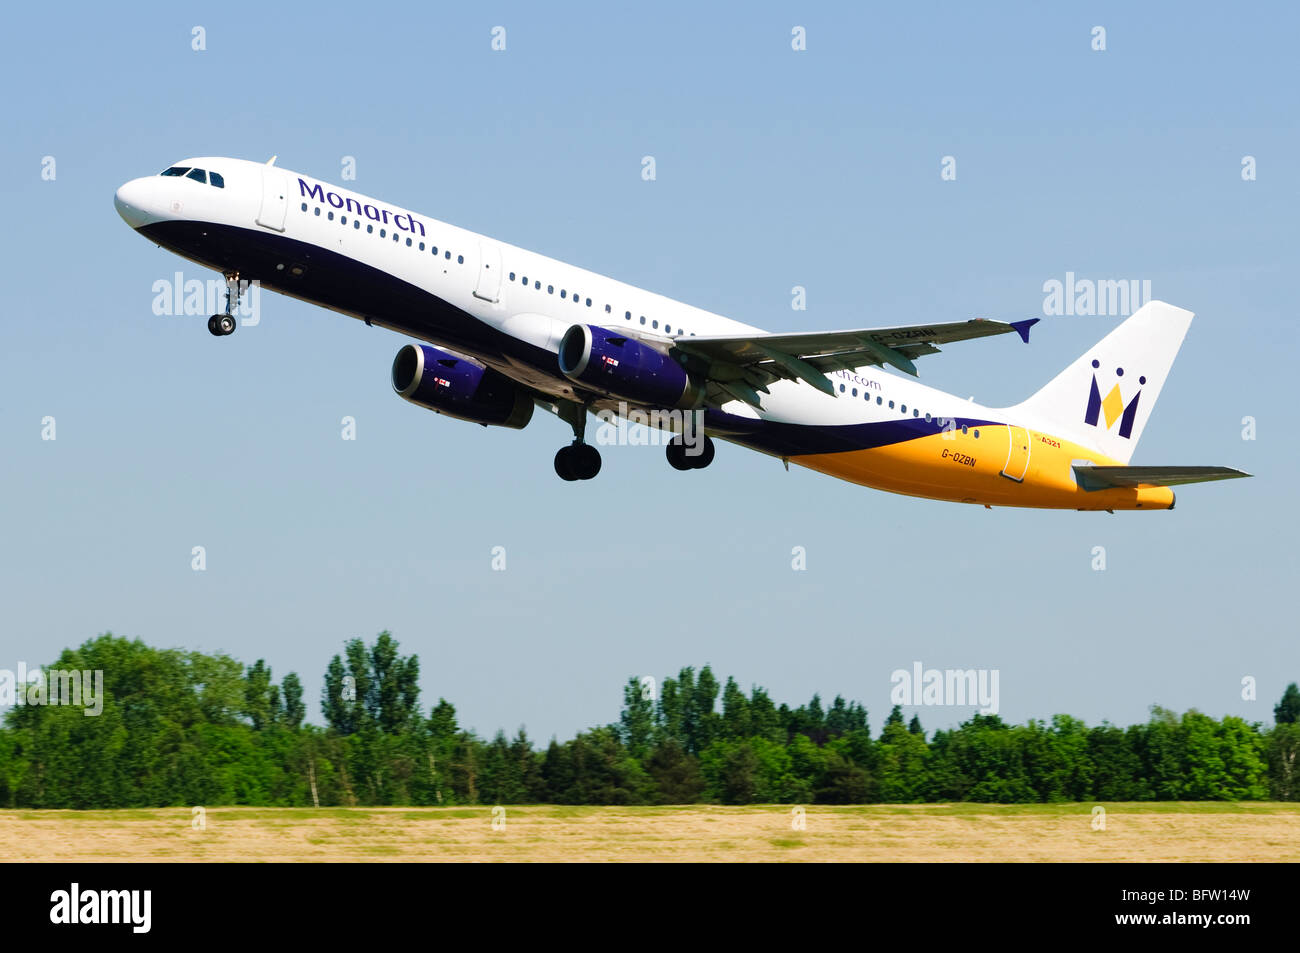 Airbus A321 operated by Monarch Airlines taking off at Birmingham Airport, UK. Stock Photo